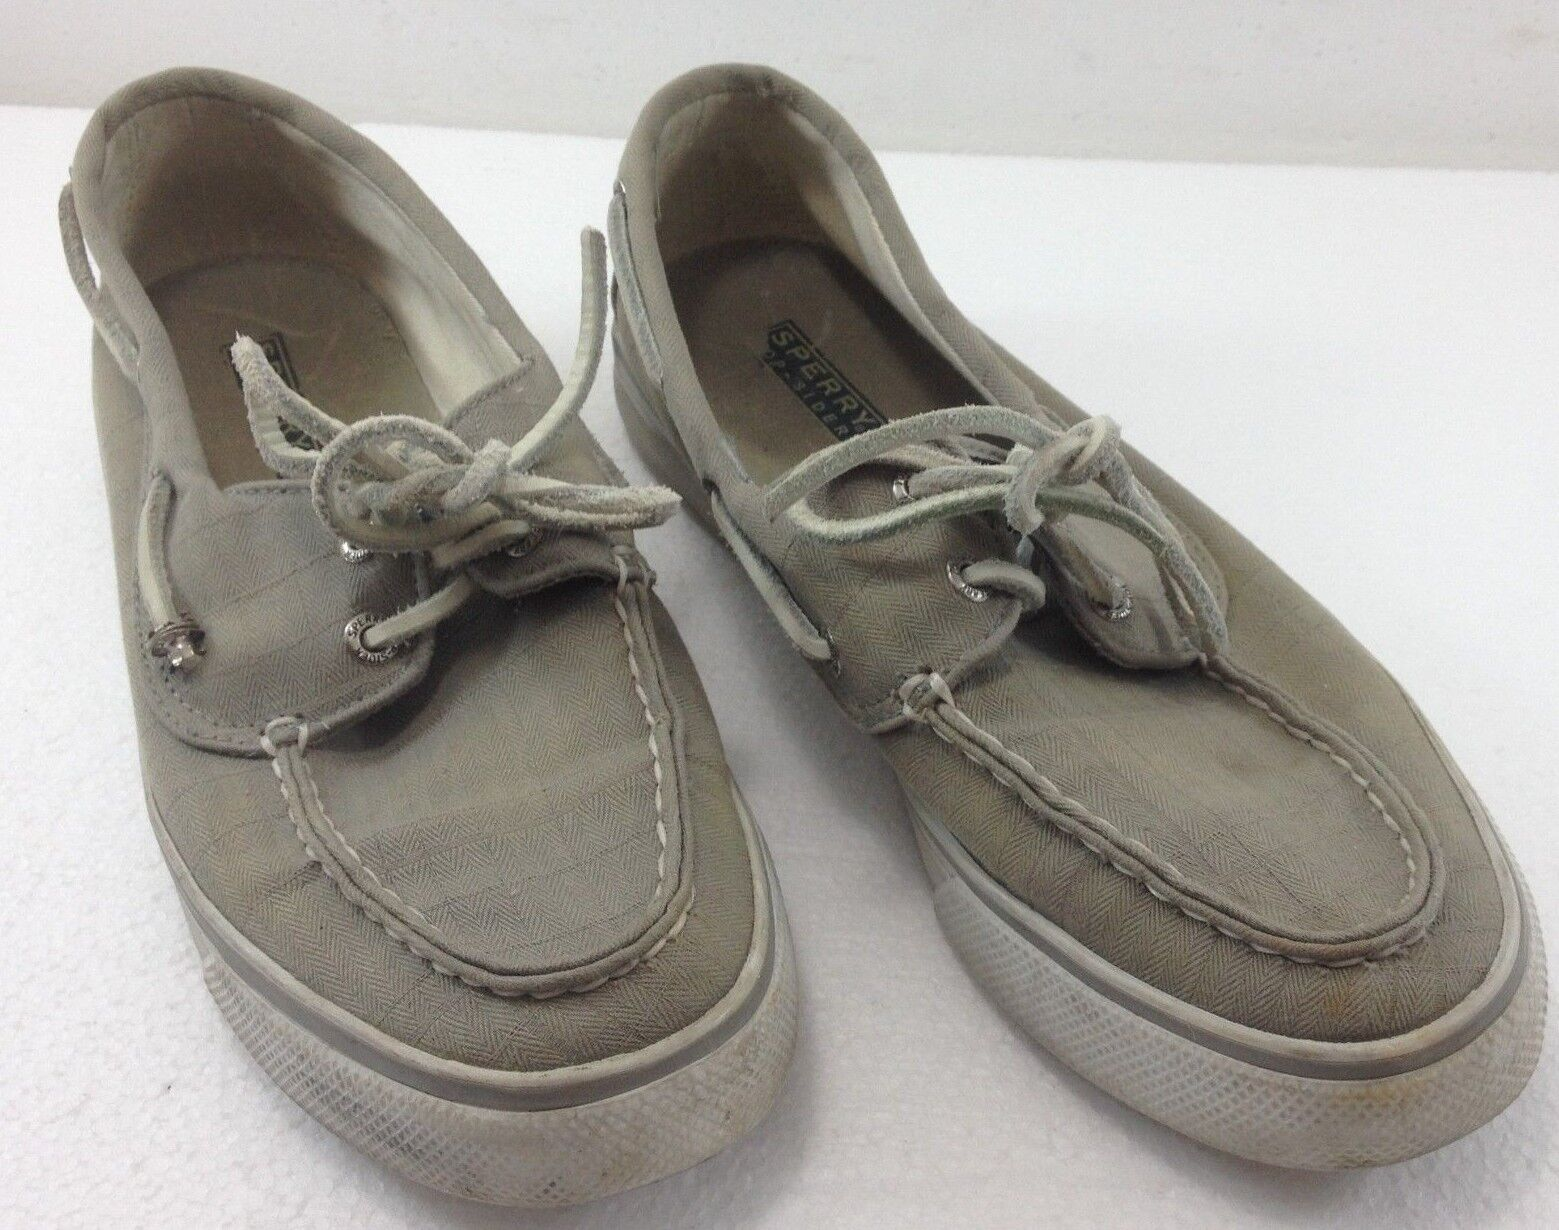 Sperry Top-Sider Womens 7.5M Meters Lacing Canvas Boat shoes Lt Green 9447012